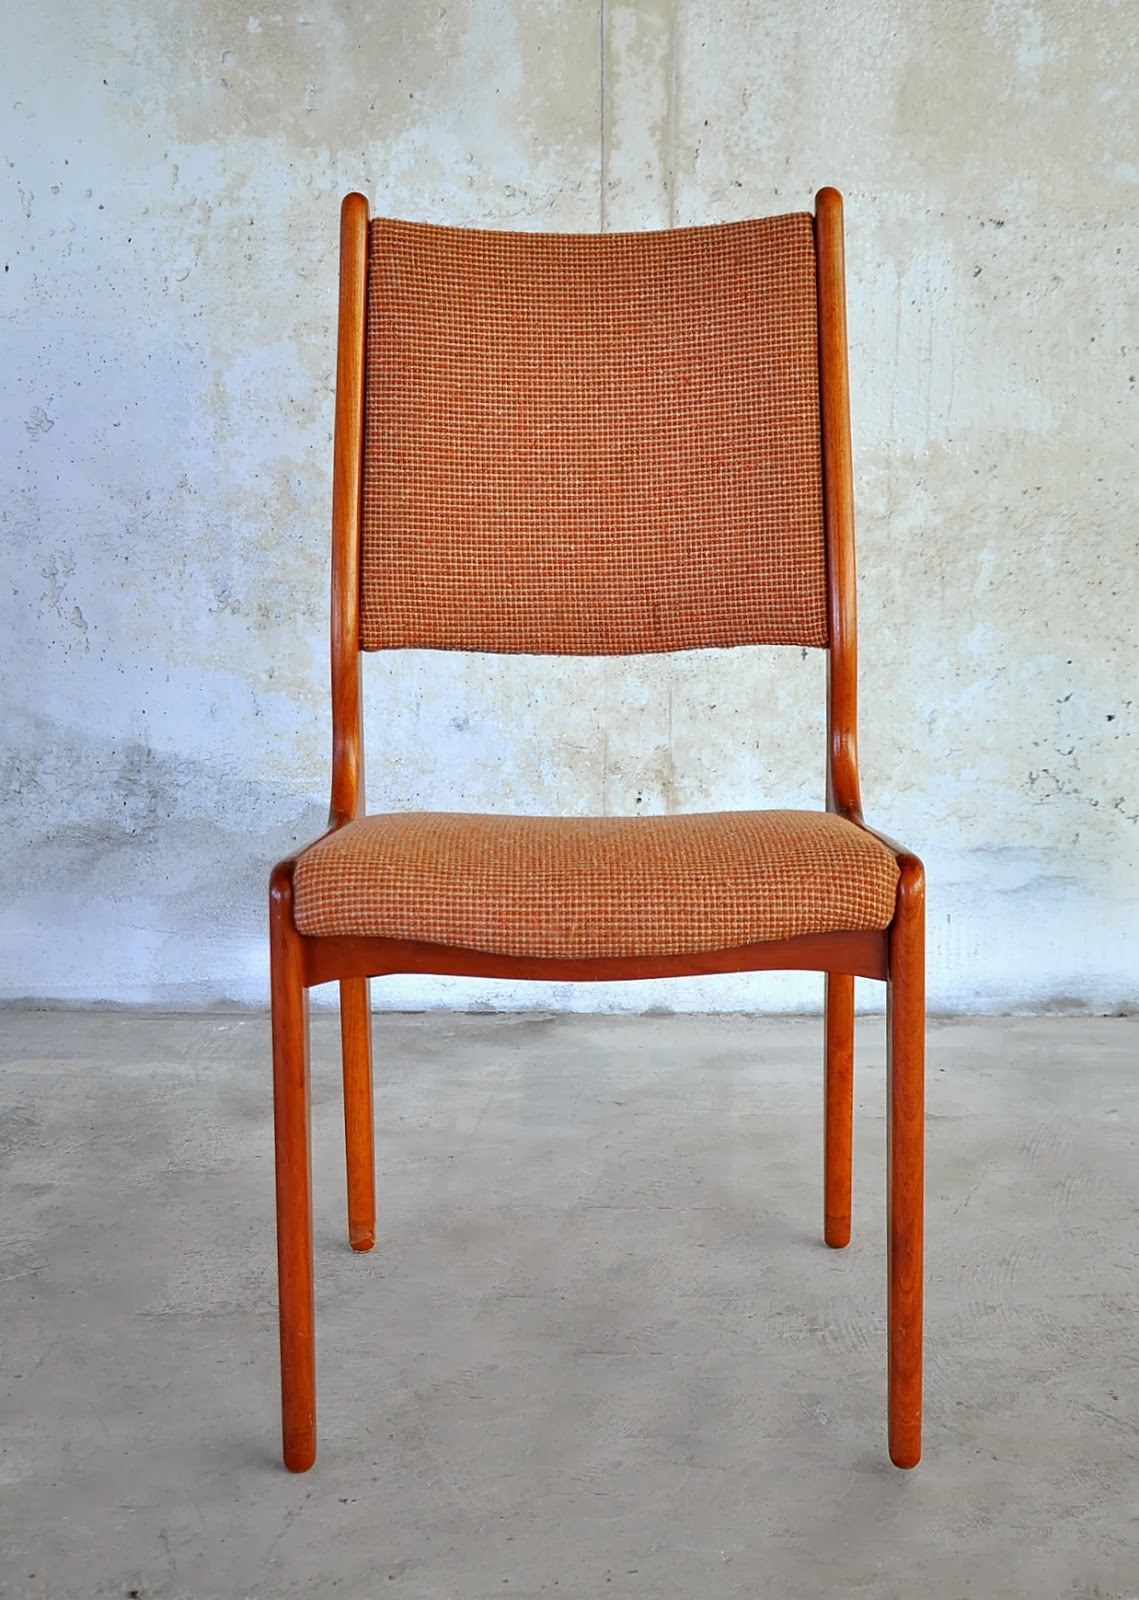 Padded Dining Chairs For Sale